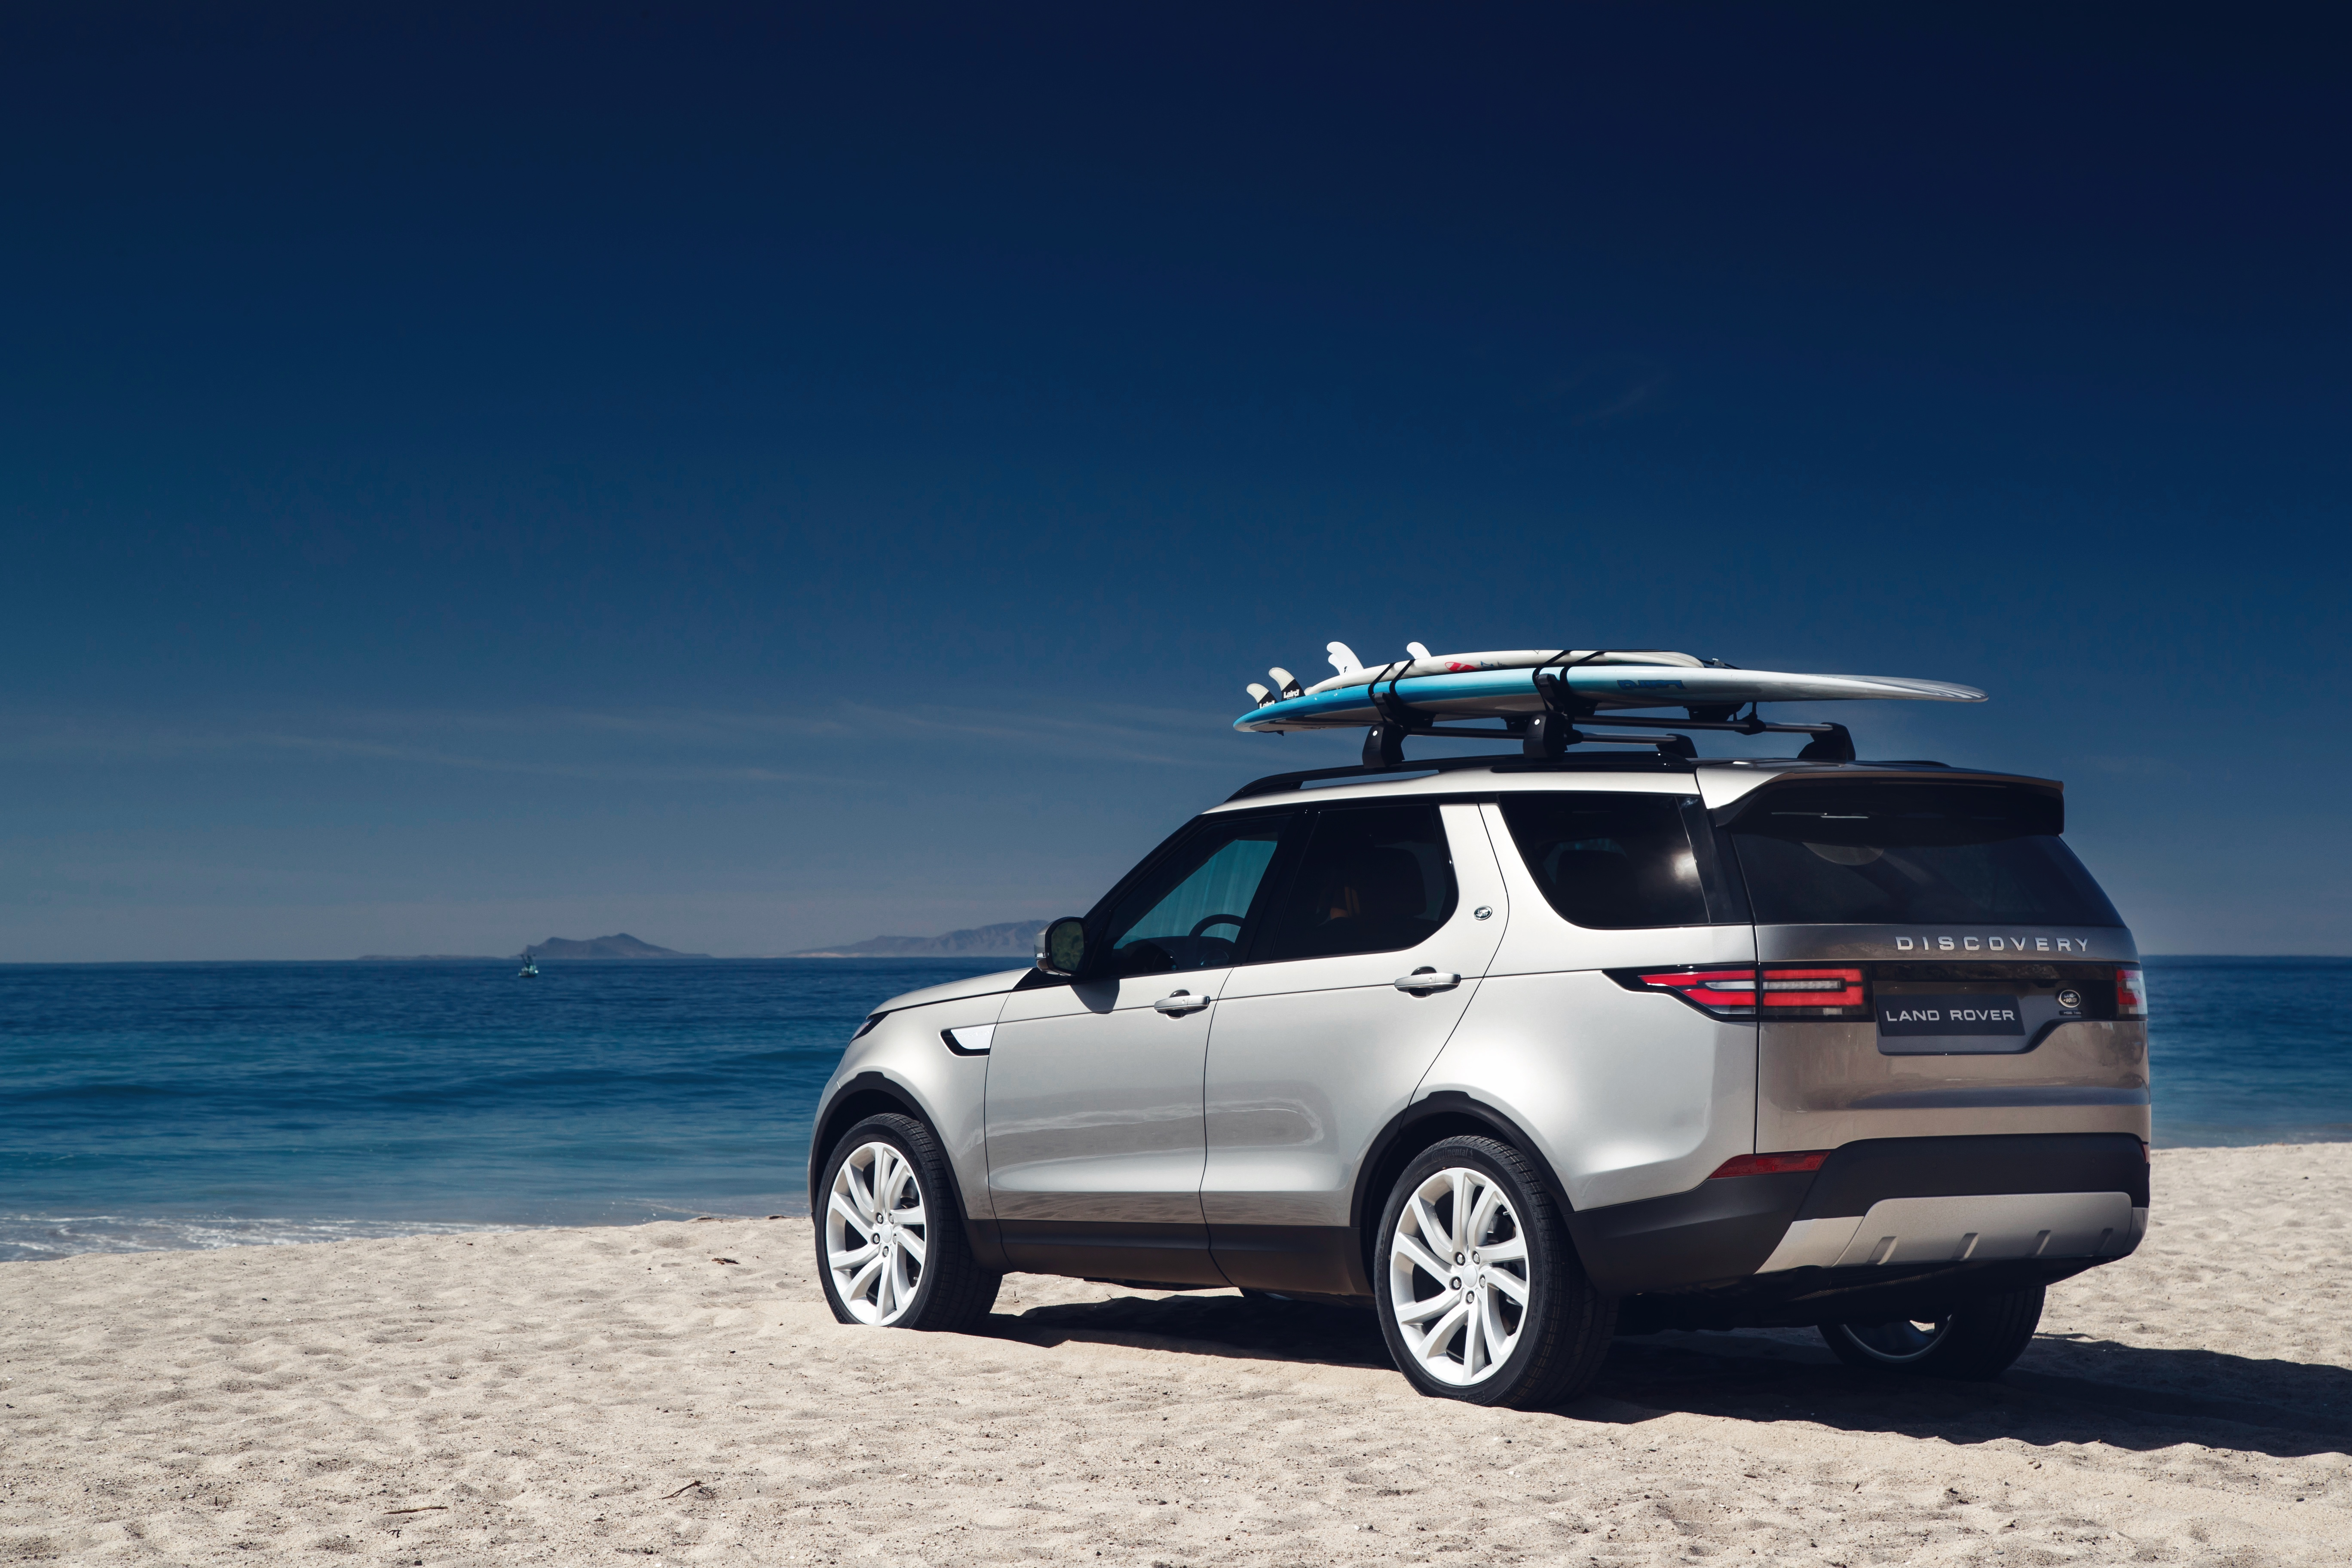 land rover shows off new discovery – wheels.ca